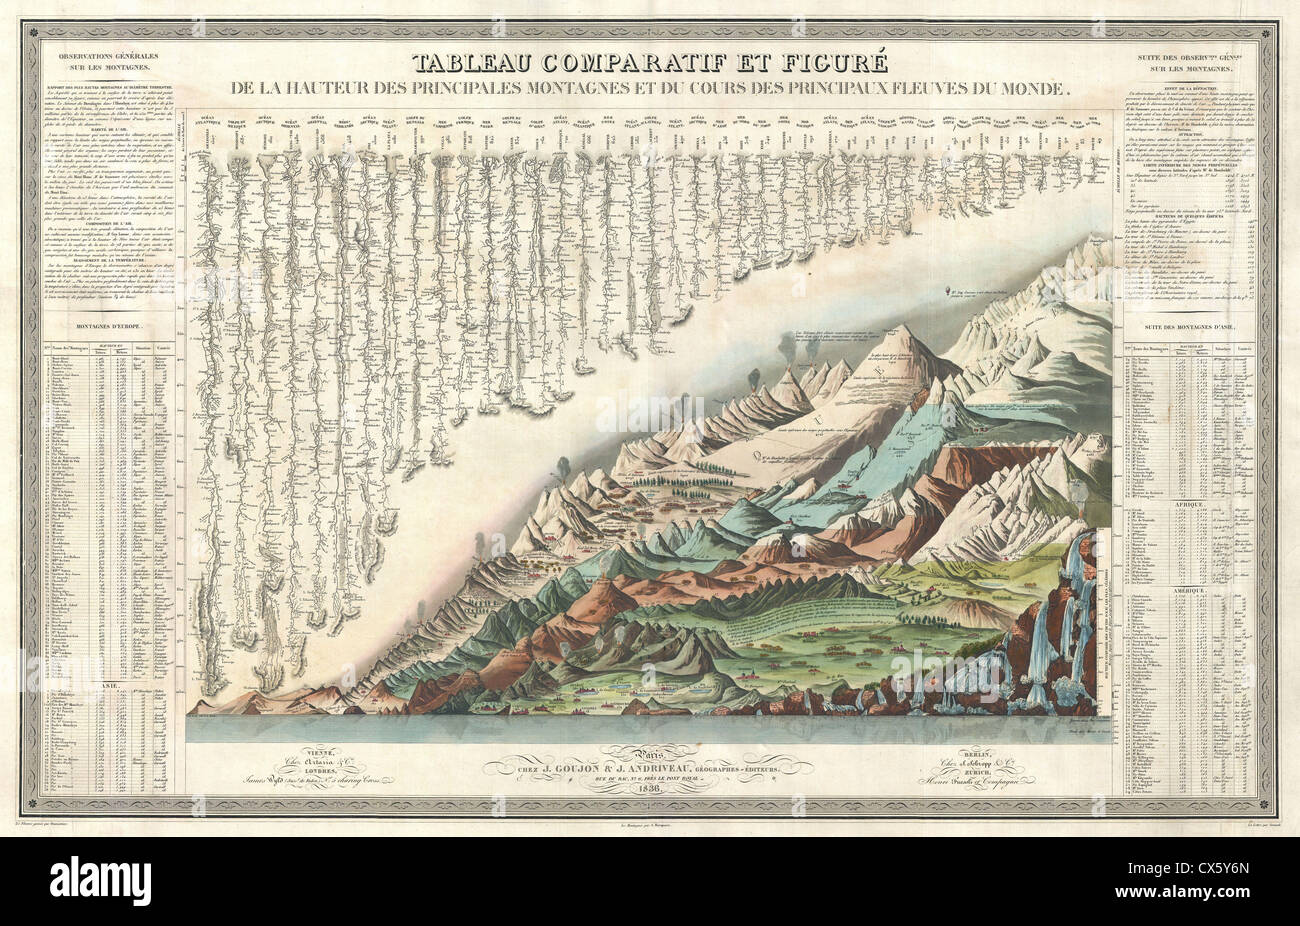 1836 Andriveau Goujon Comparative Mountains and Rivers Chart - Stock Image